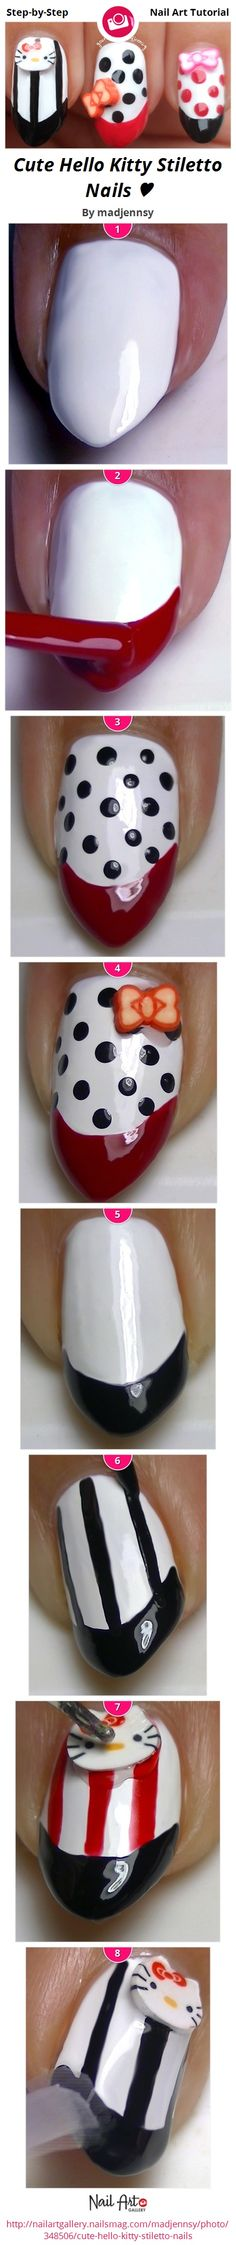 Cute Hello Kitty Stiletto Nails ♥ by madjennsy - Nail Art Gallery Step-by-Step Tutorials nailartgallery.nailsmag.com by Nails Magazine www.nailsmag.com #nailart